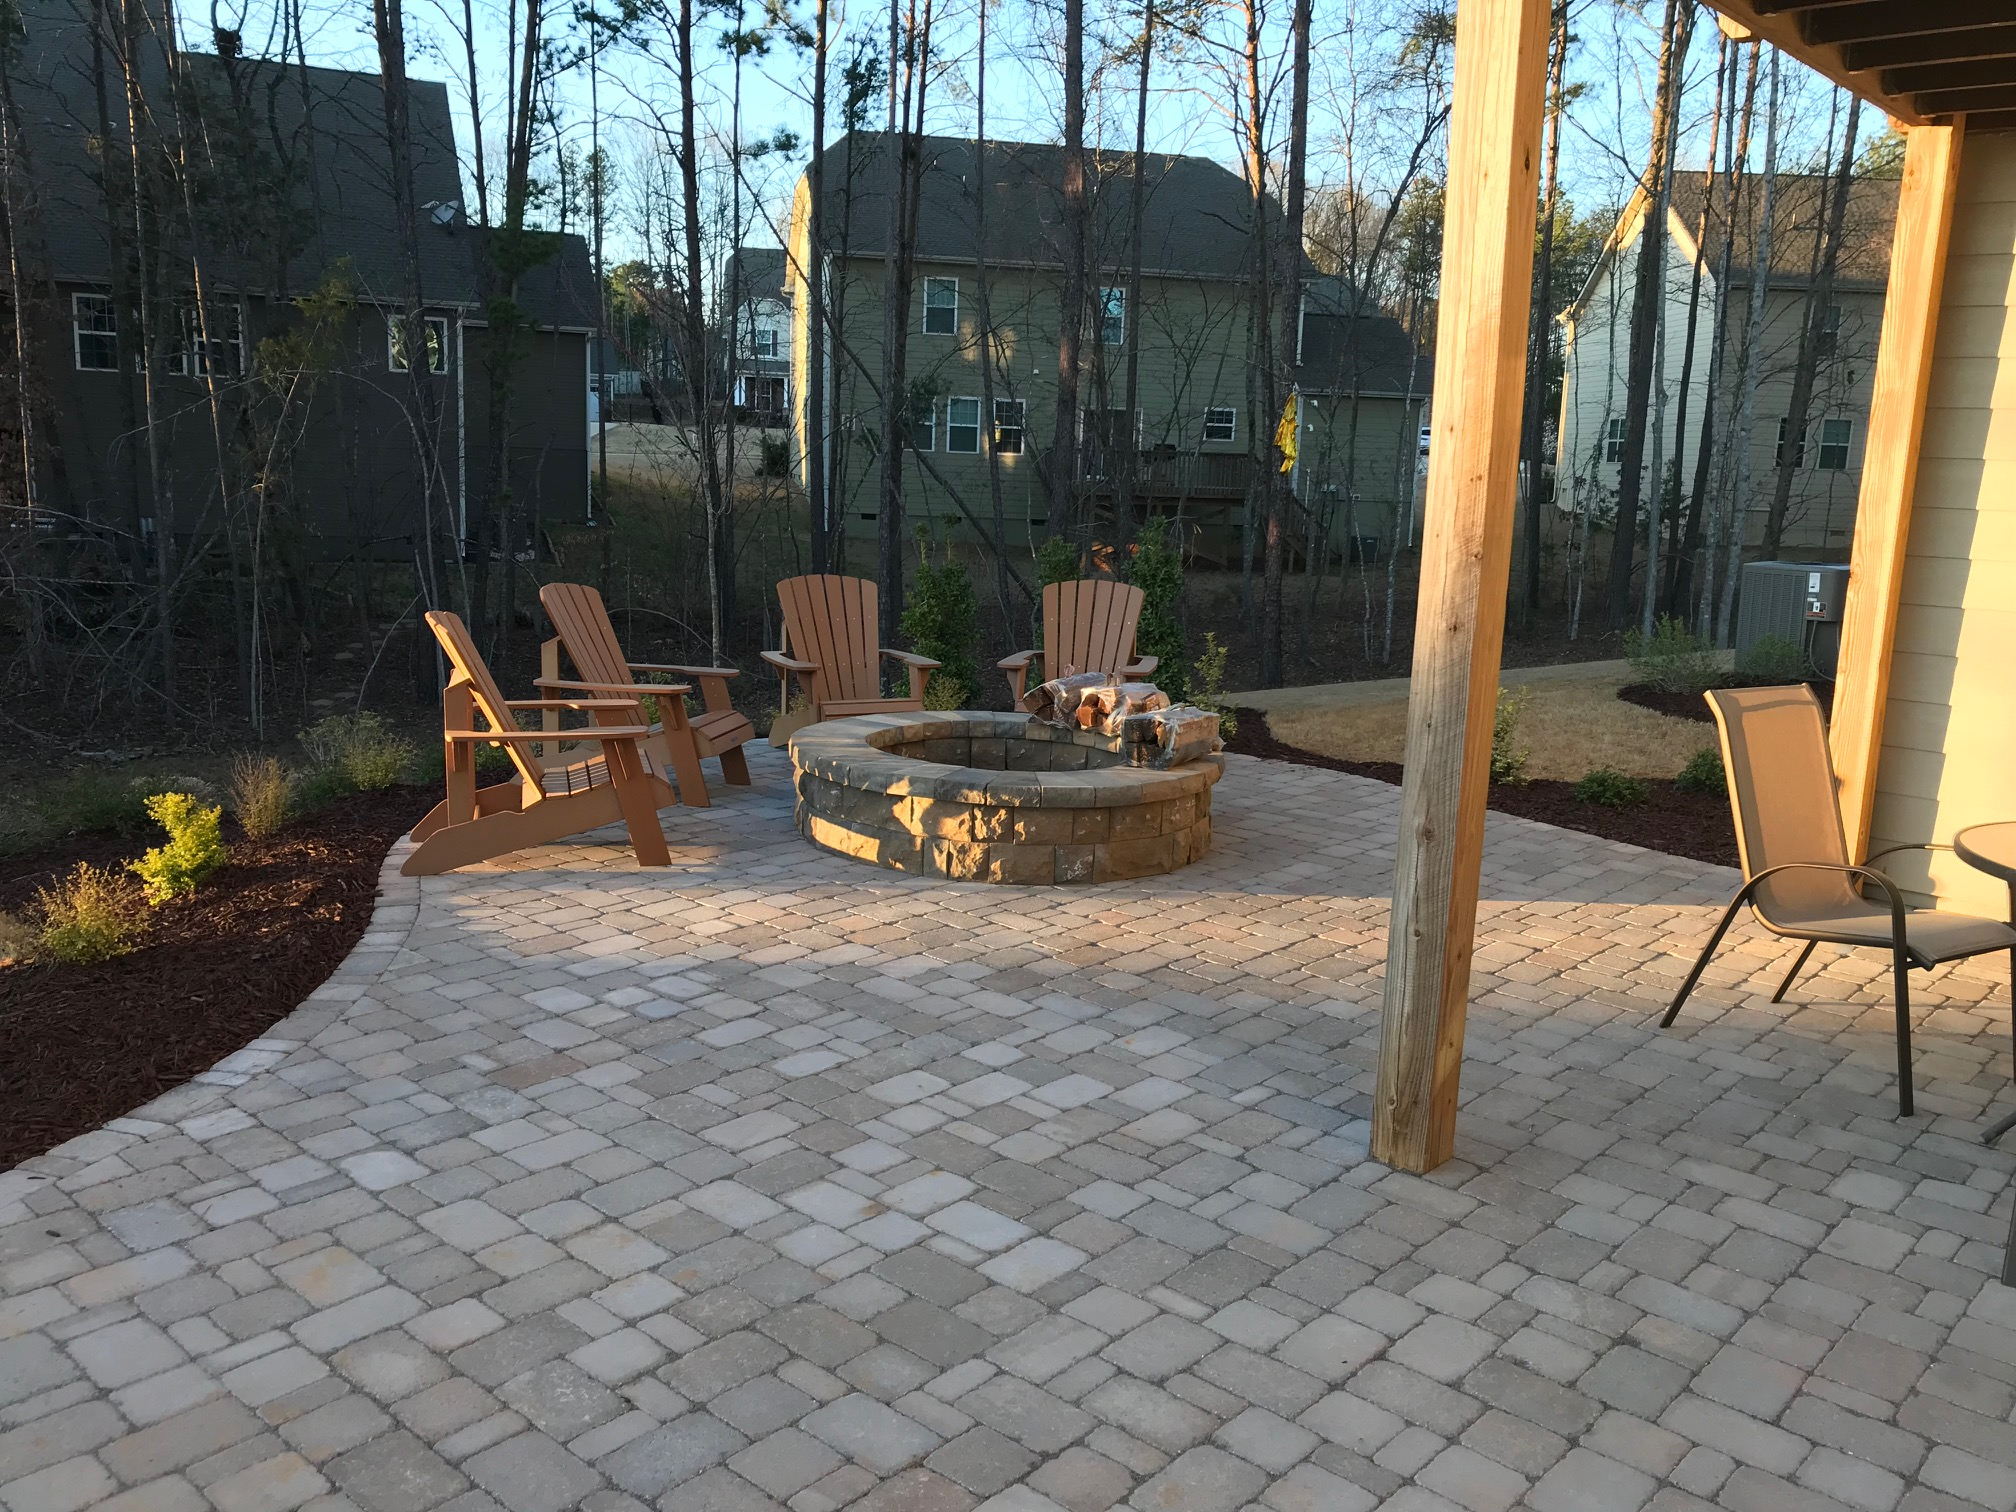 A Belgard Paver Patio, Fire Pit and Landscaping - Mr ... on Paver Patio With Fire Pit Ideas id=98170